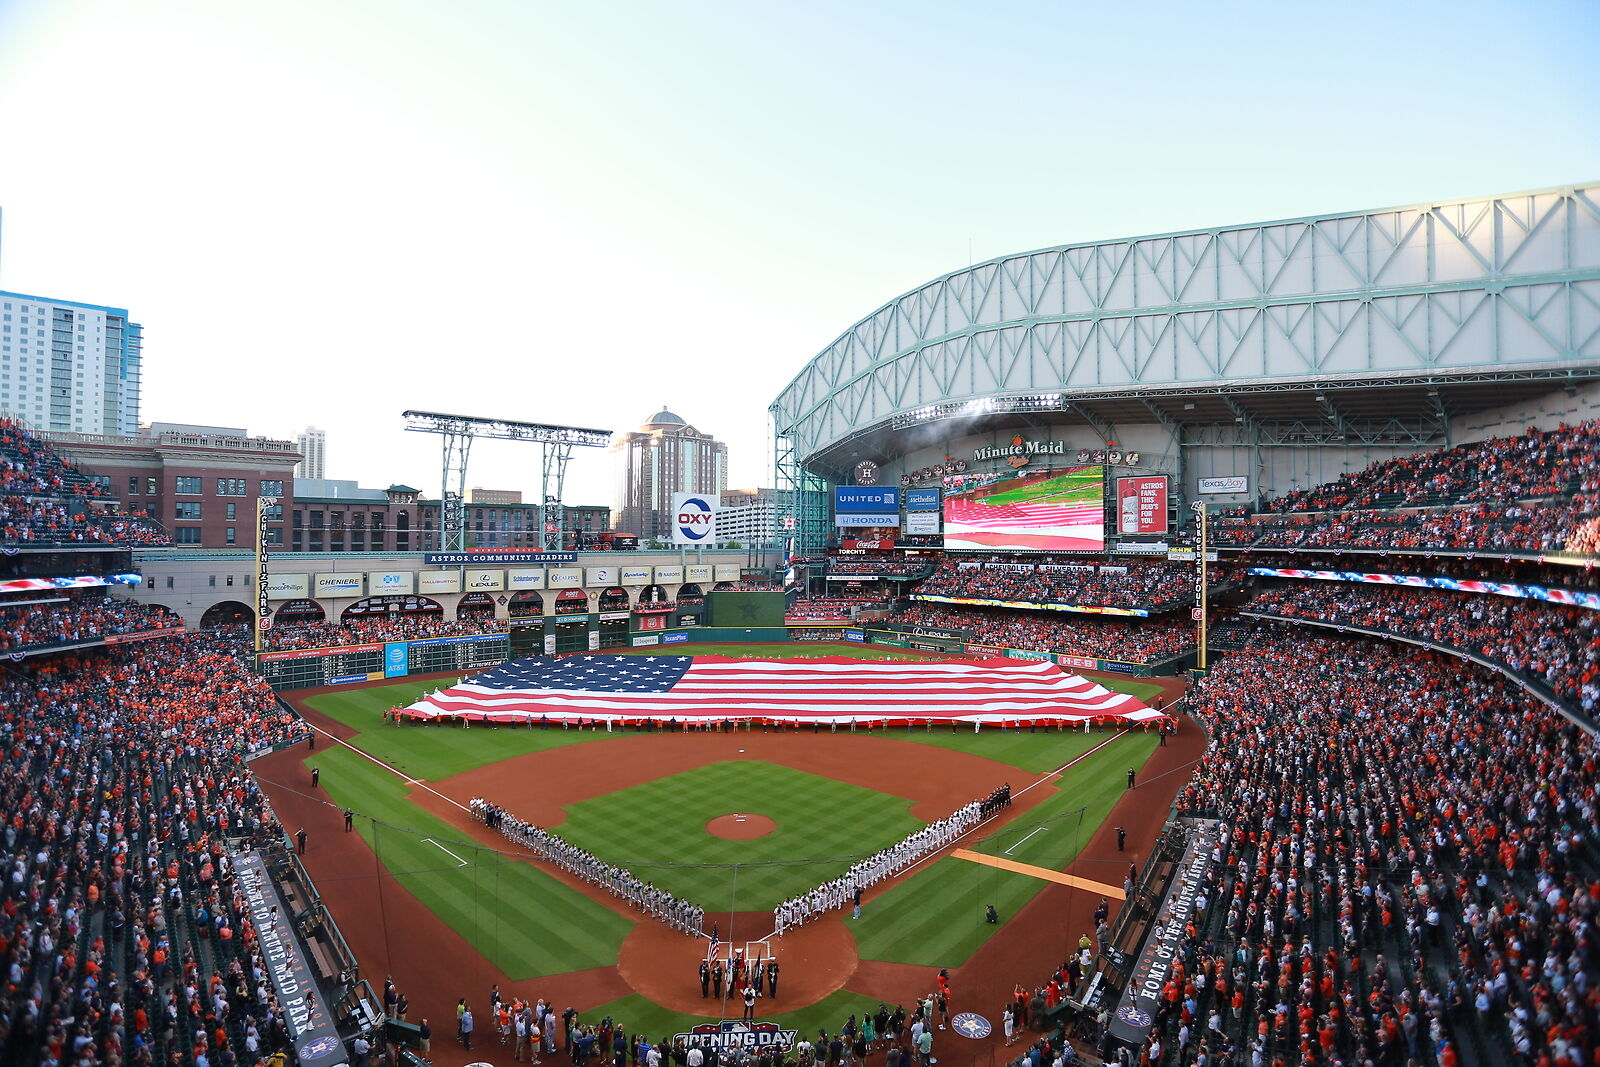 houston astros vs tampa bay rays 6 20 2018 tickets on stubhub. Black Bedroom Furniture Sets. Home Design Ideas